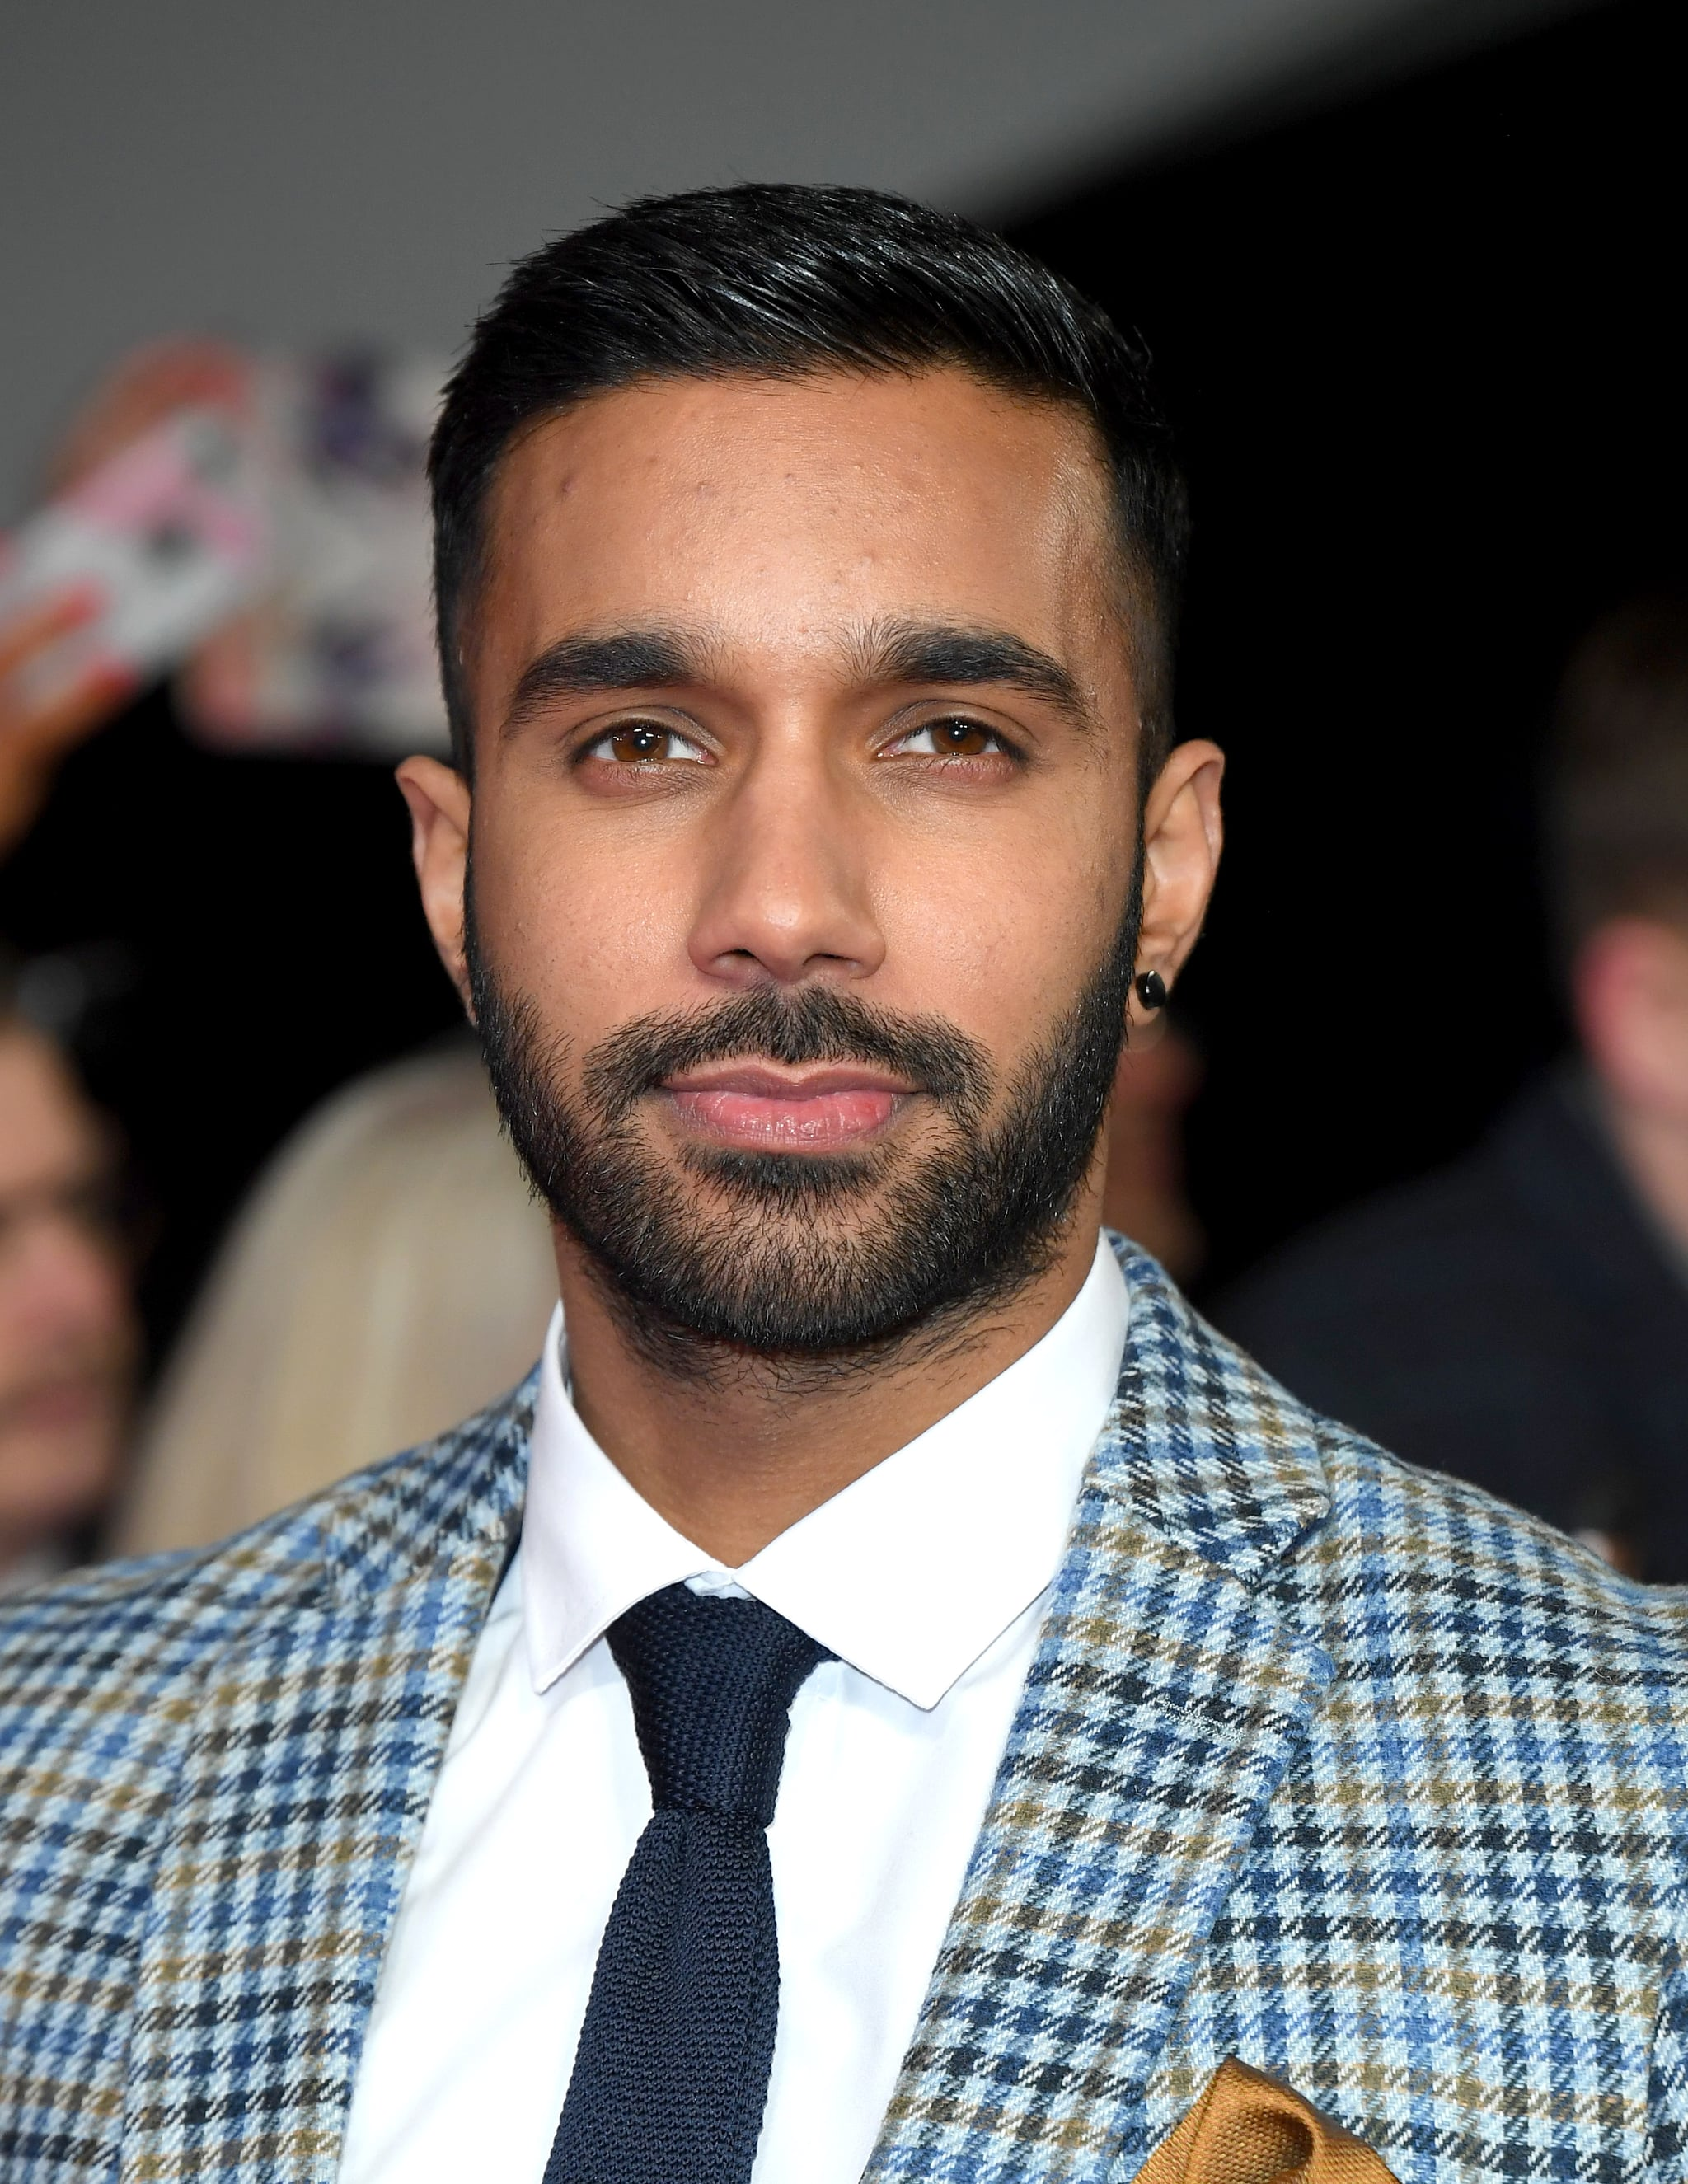 LONDON, ENGLAND - JANUARY 28: Rishi Nair attends the National Television Awards 2020 at The O2 Arena on January 28, 2020 in London, England. (Photo by Karwai Tang/WireImage)